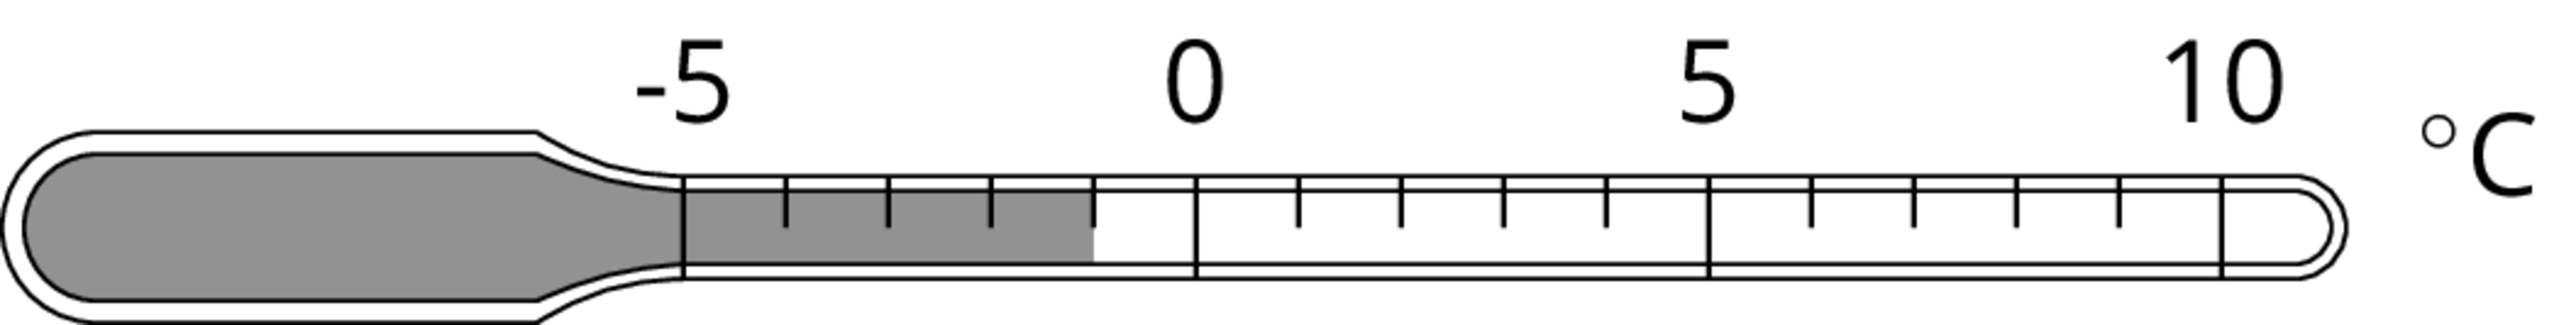 """A thermometer positioned horizontally and with the bottom of the thermometer on the left, is labeled """"degrees Celsius."""" There are 4 evenly spaced large tick marks. Starting on the left, the large tick marks are labeled negative 5, 0, 5, and 10. Between each large tick mark, there are 4 evenly spaced small tick marks. The thermometer is shaded, starting from the left, up to negative 1."""